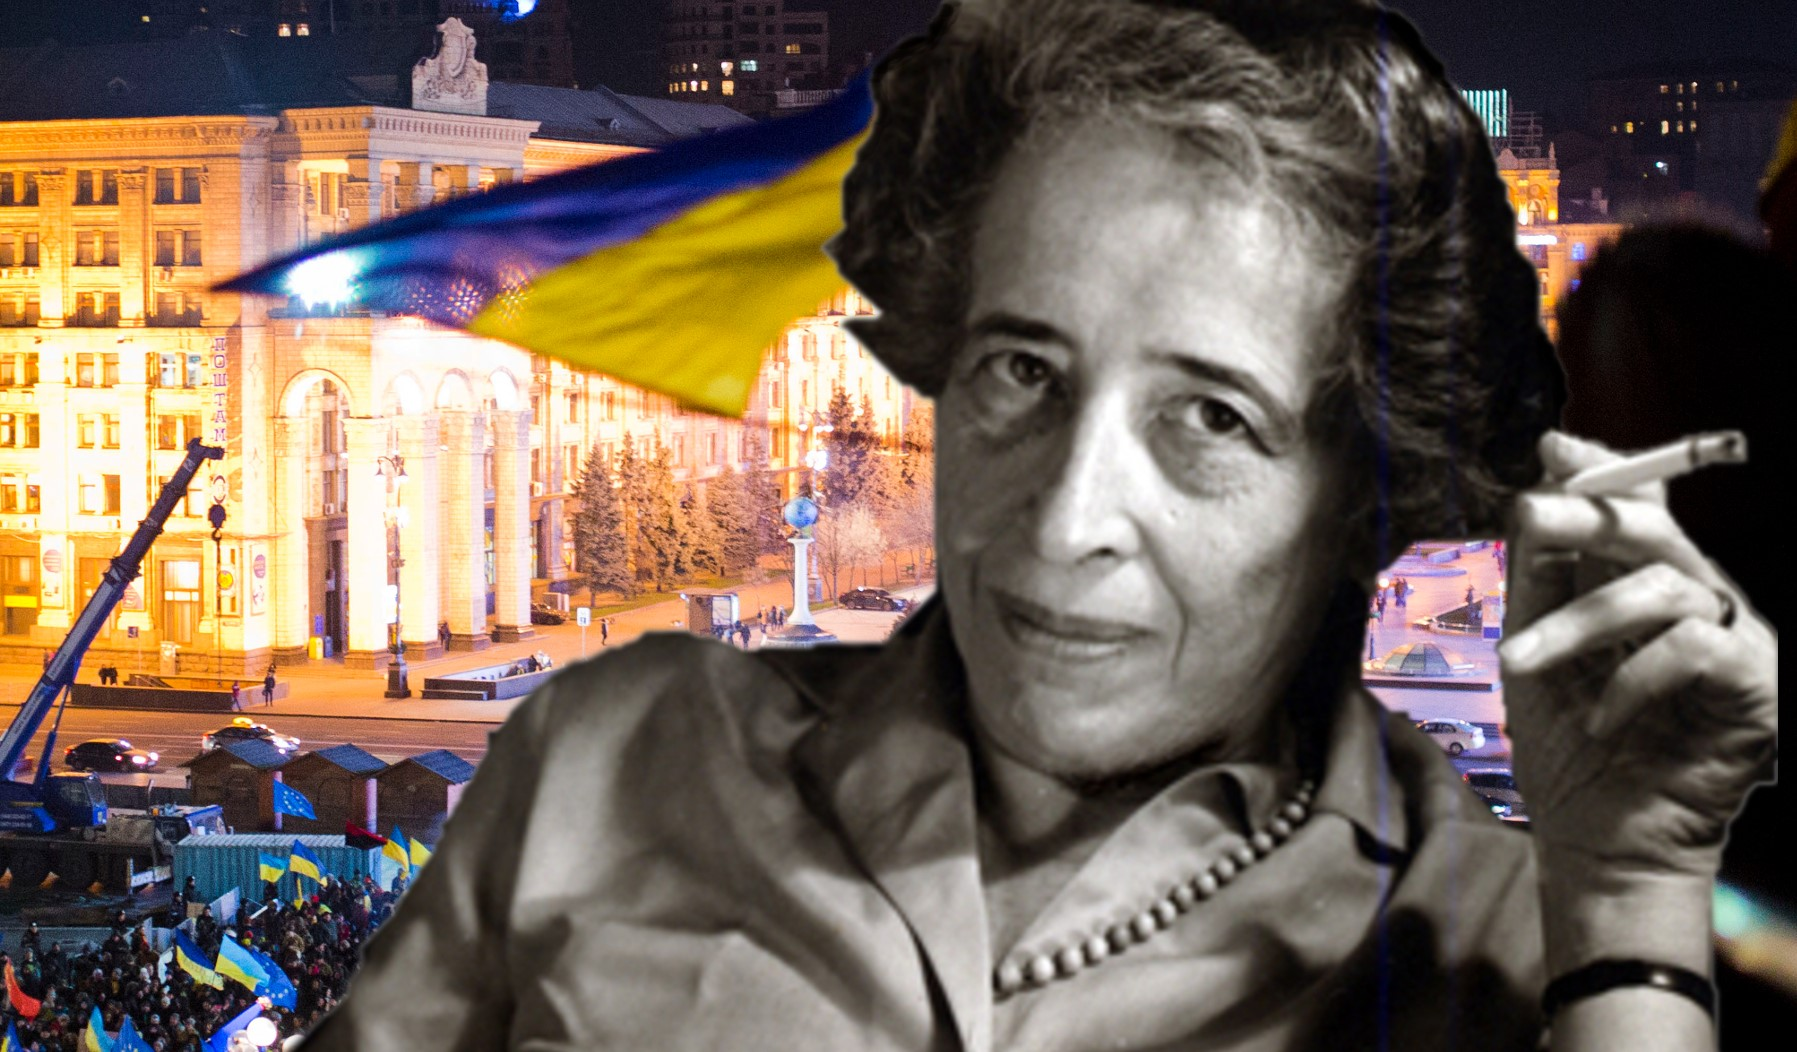 hannah arendt essays Source: after reading hannah arendt, in poetry (chicago), vol 100, no 2, may, 1962, pp 127-30 [in the following essay, donoghue relates the profound, humane reflections in arendt's works to contemporary poetry, noting that he had the disturbing impression that she had far more to say more.